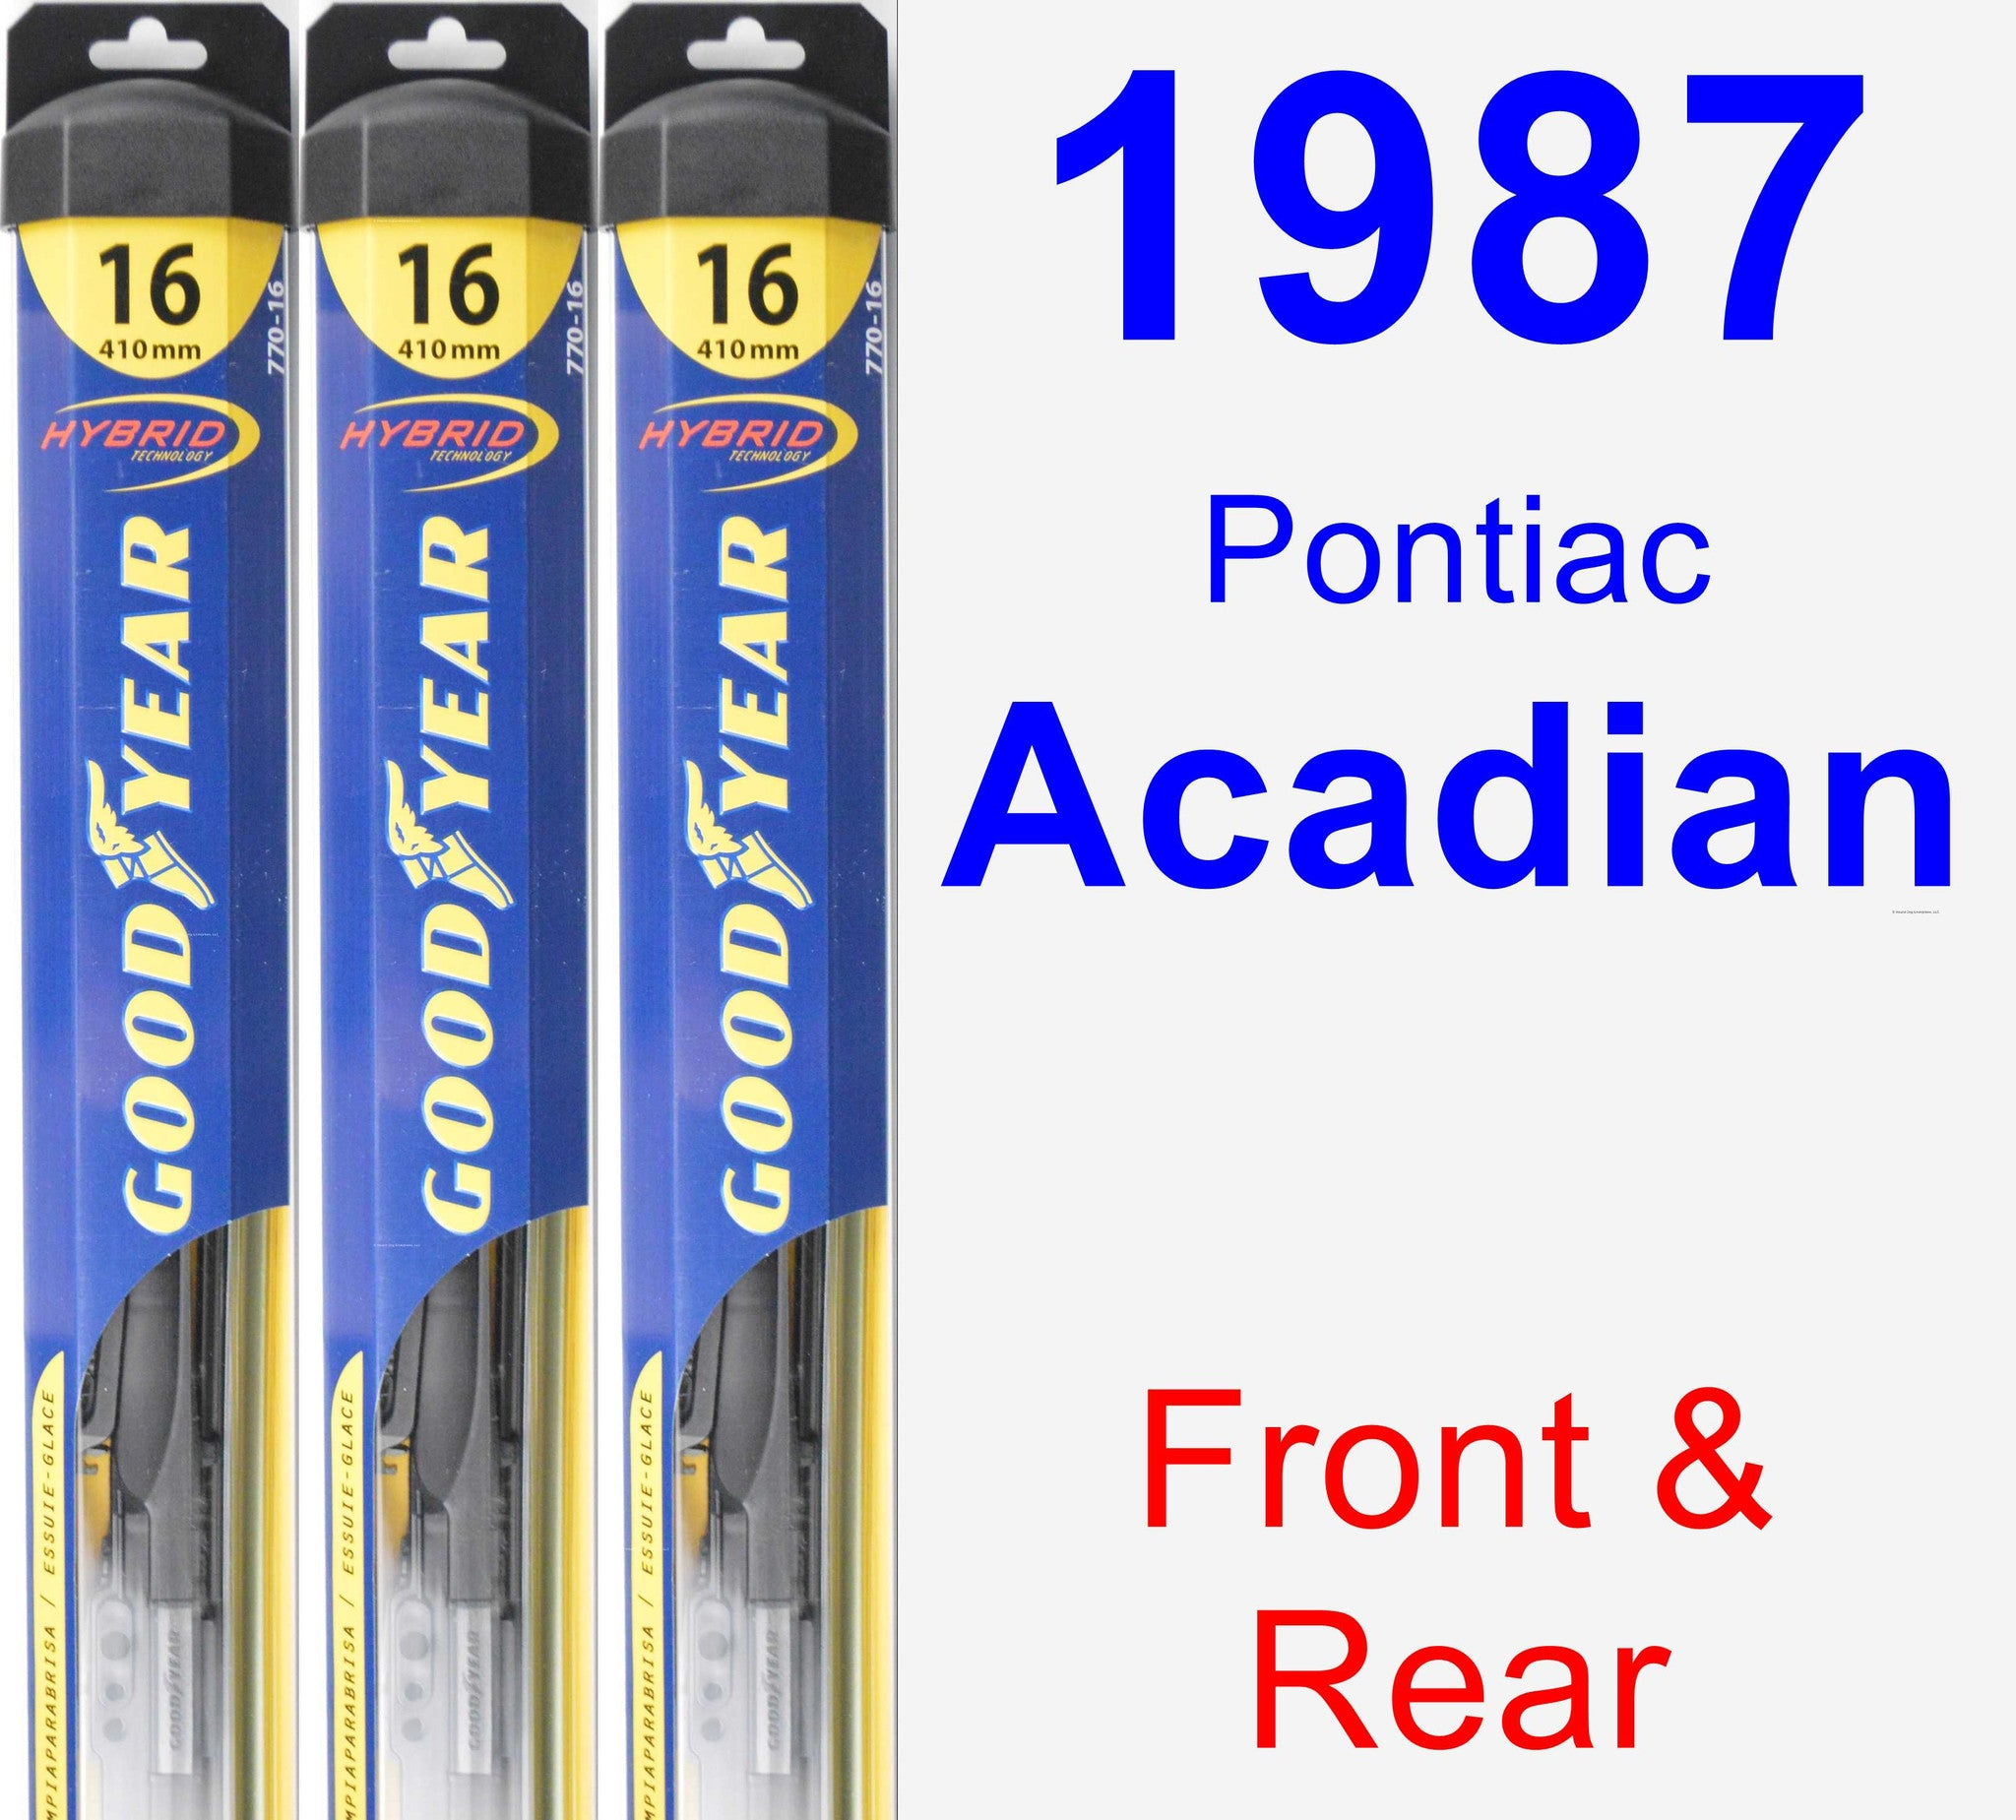 Front & Rear Wiper Blade Pack for 1987 Pontiac Acadian - Hybrid